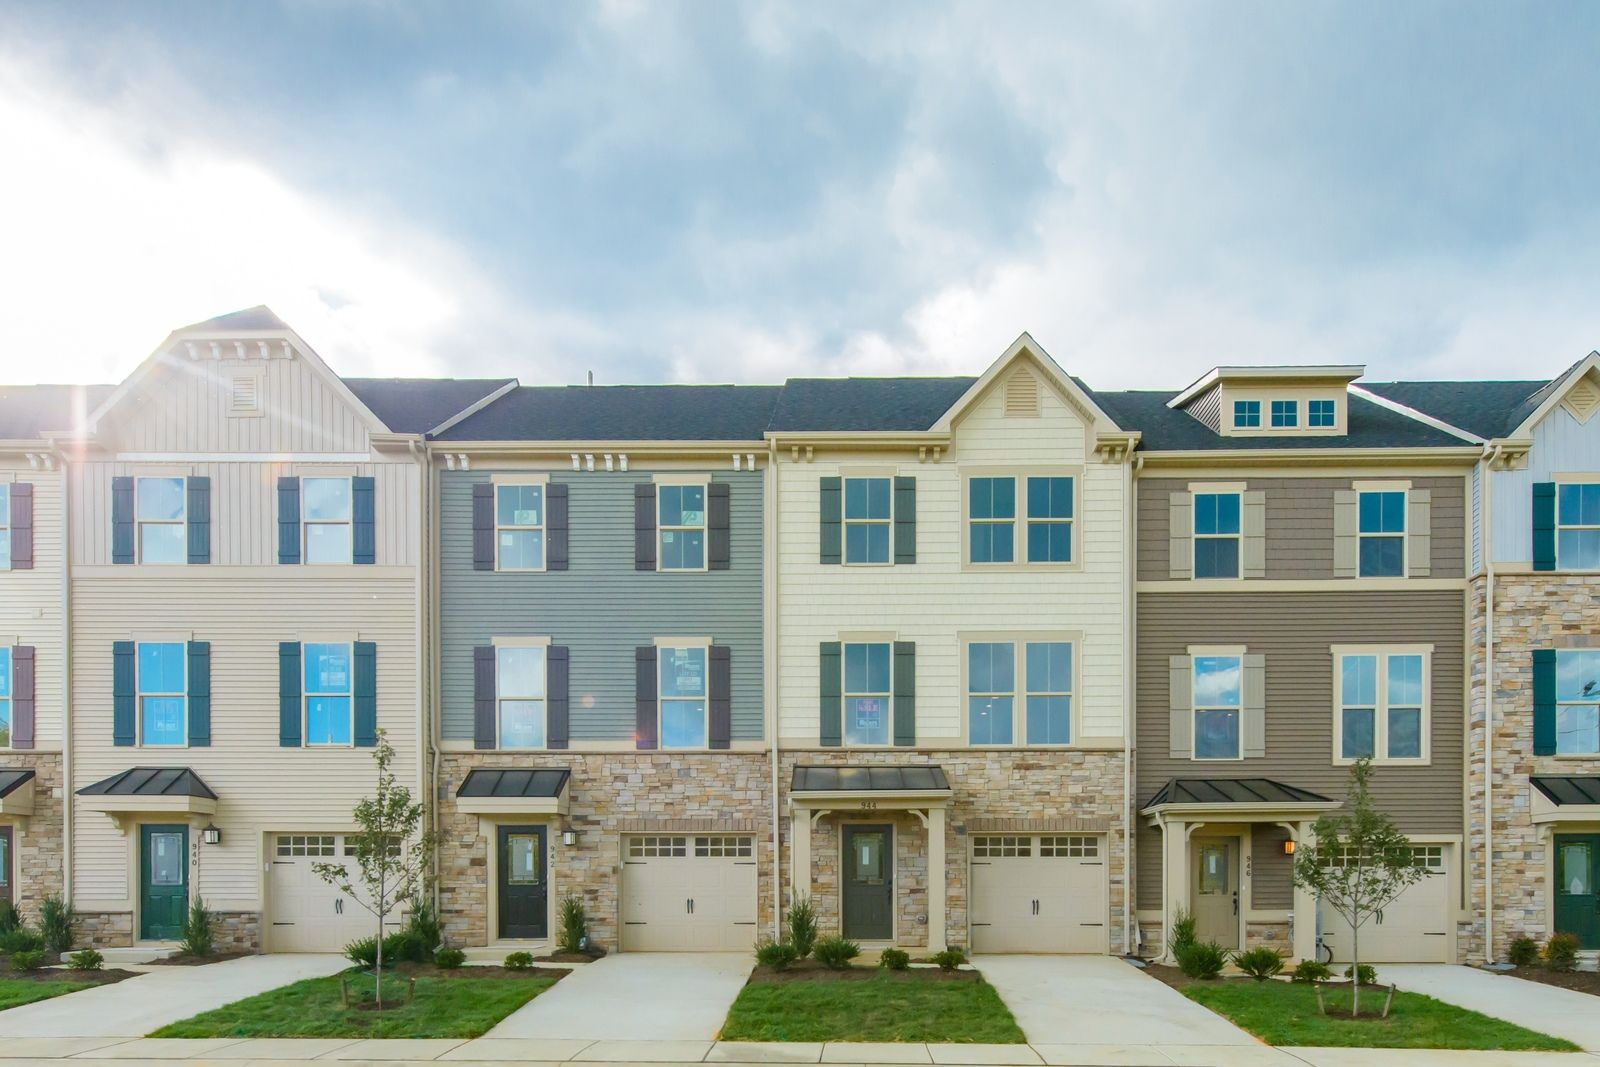 welcome to the villages at berkley square:Last chance for an upscale townhome with craftsman finishes in Kingsway schools, only one minute to 295 and 15 minutes to Philadelphia.Click here to schedule your appointment.